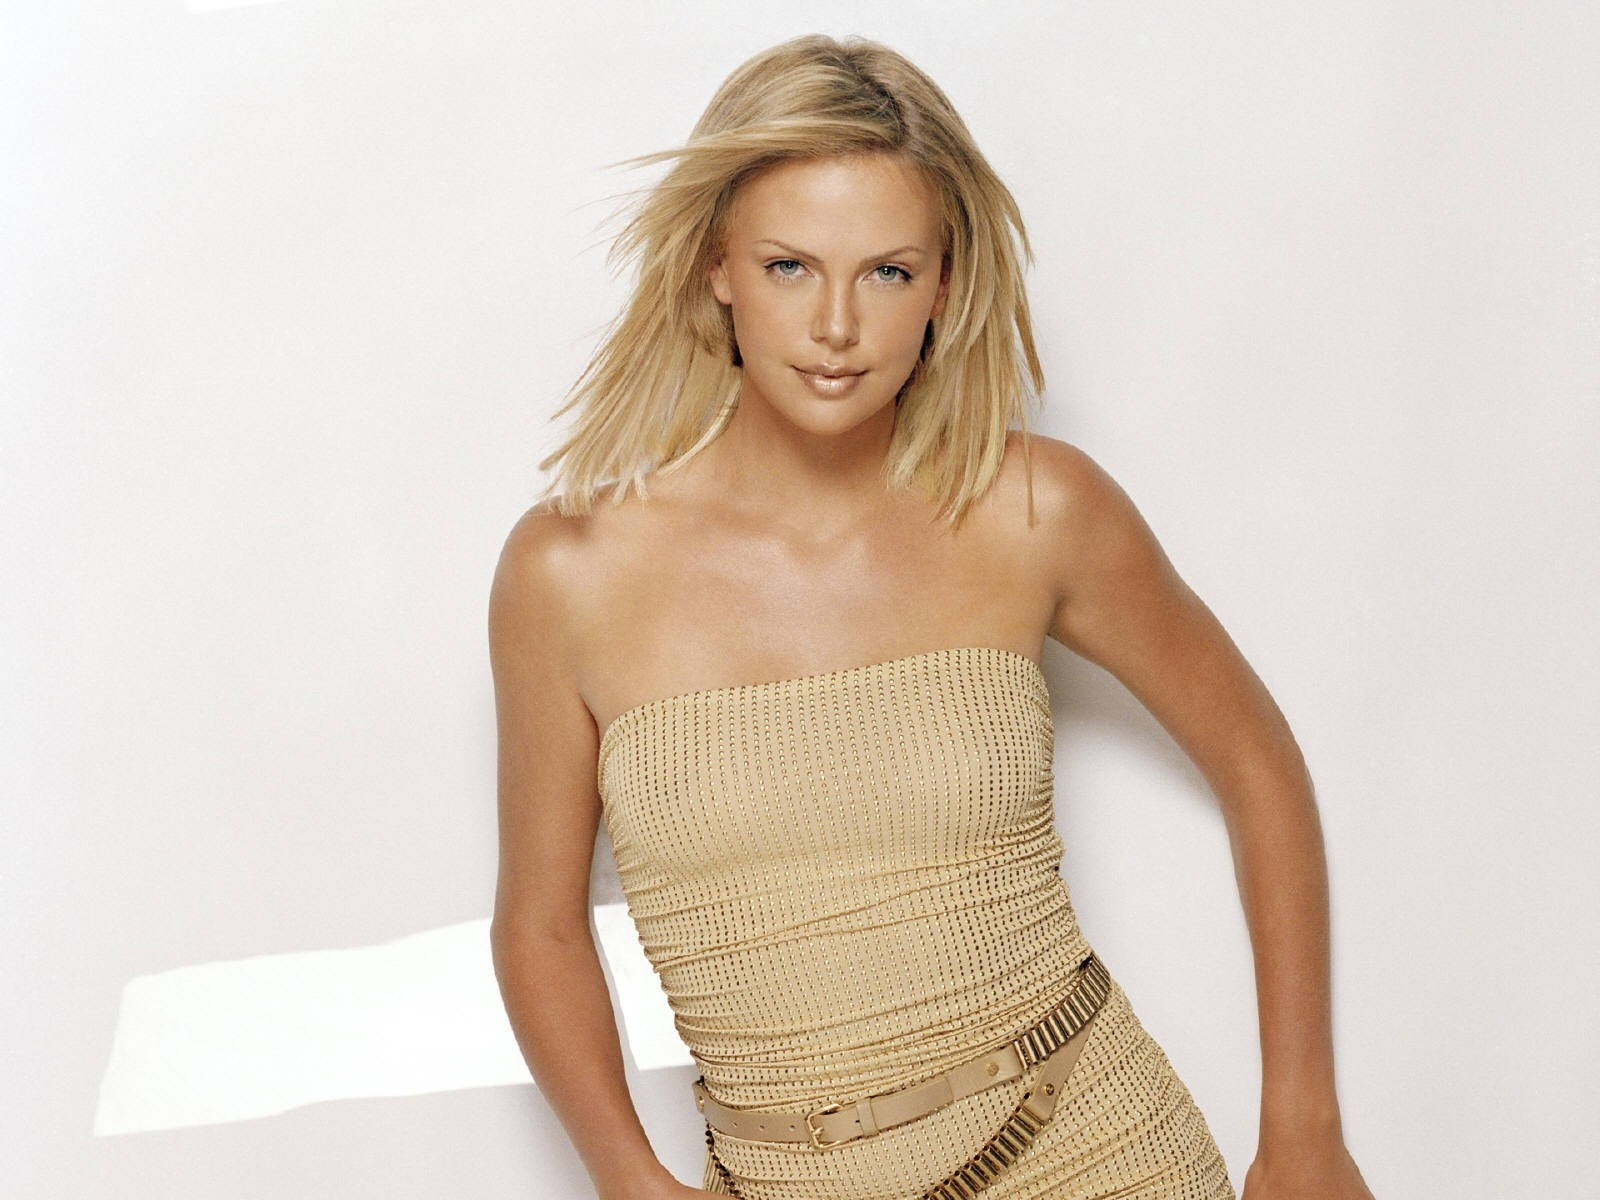 Wallpaper di Charlize Theron fasciata in un abito color sabbia